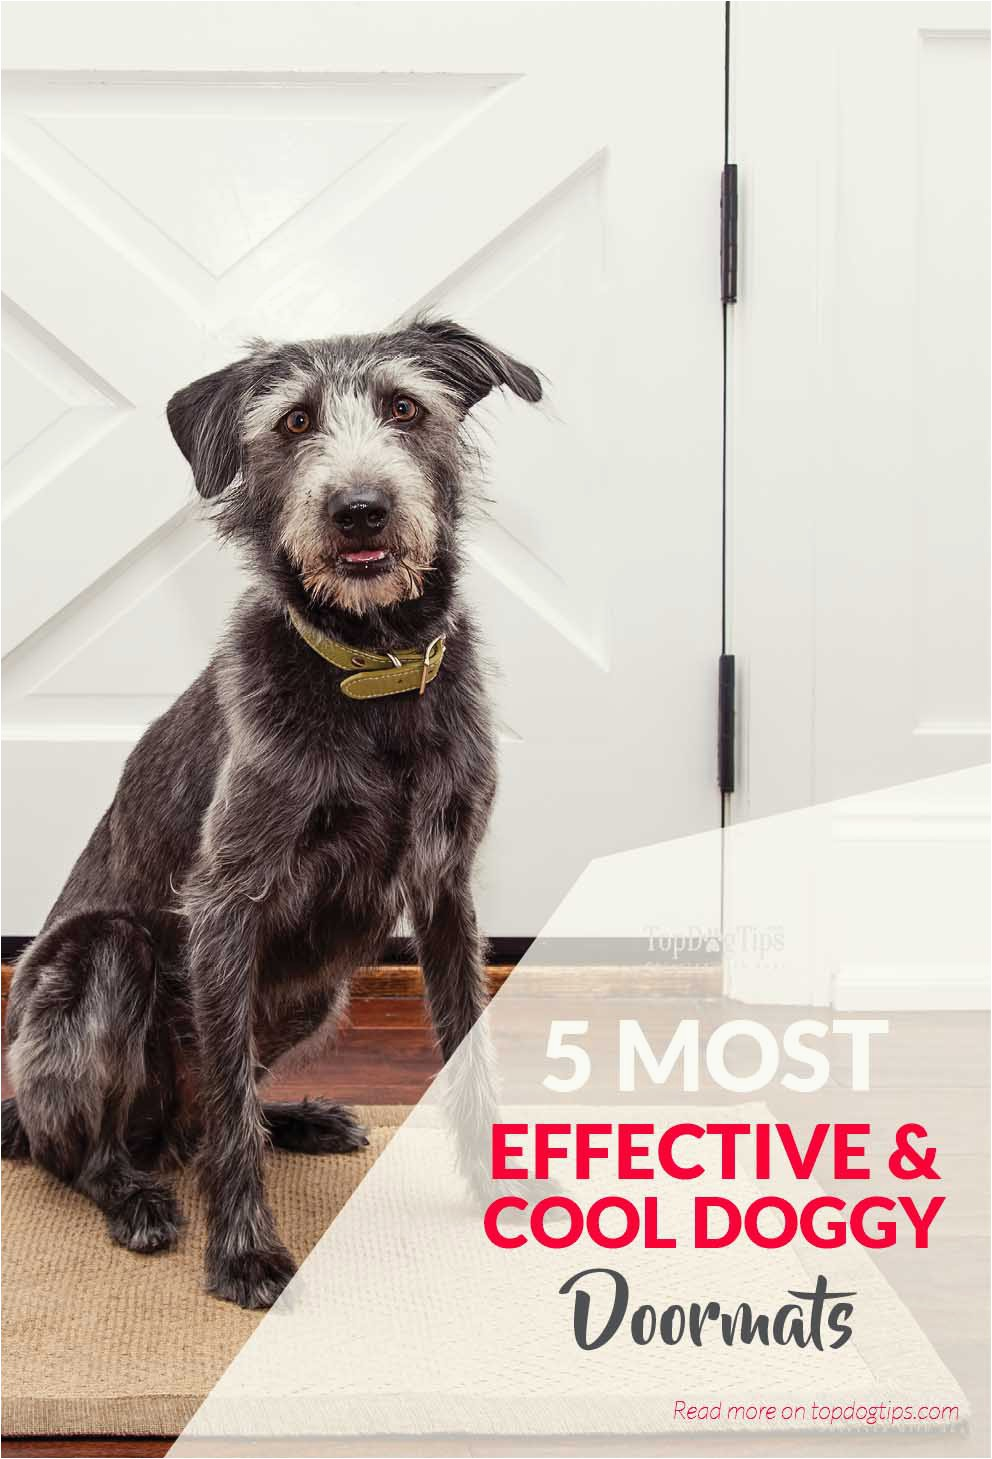 Top Best Doggy Doormats To Keep Your Home Clean and Dry